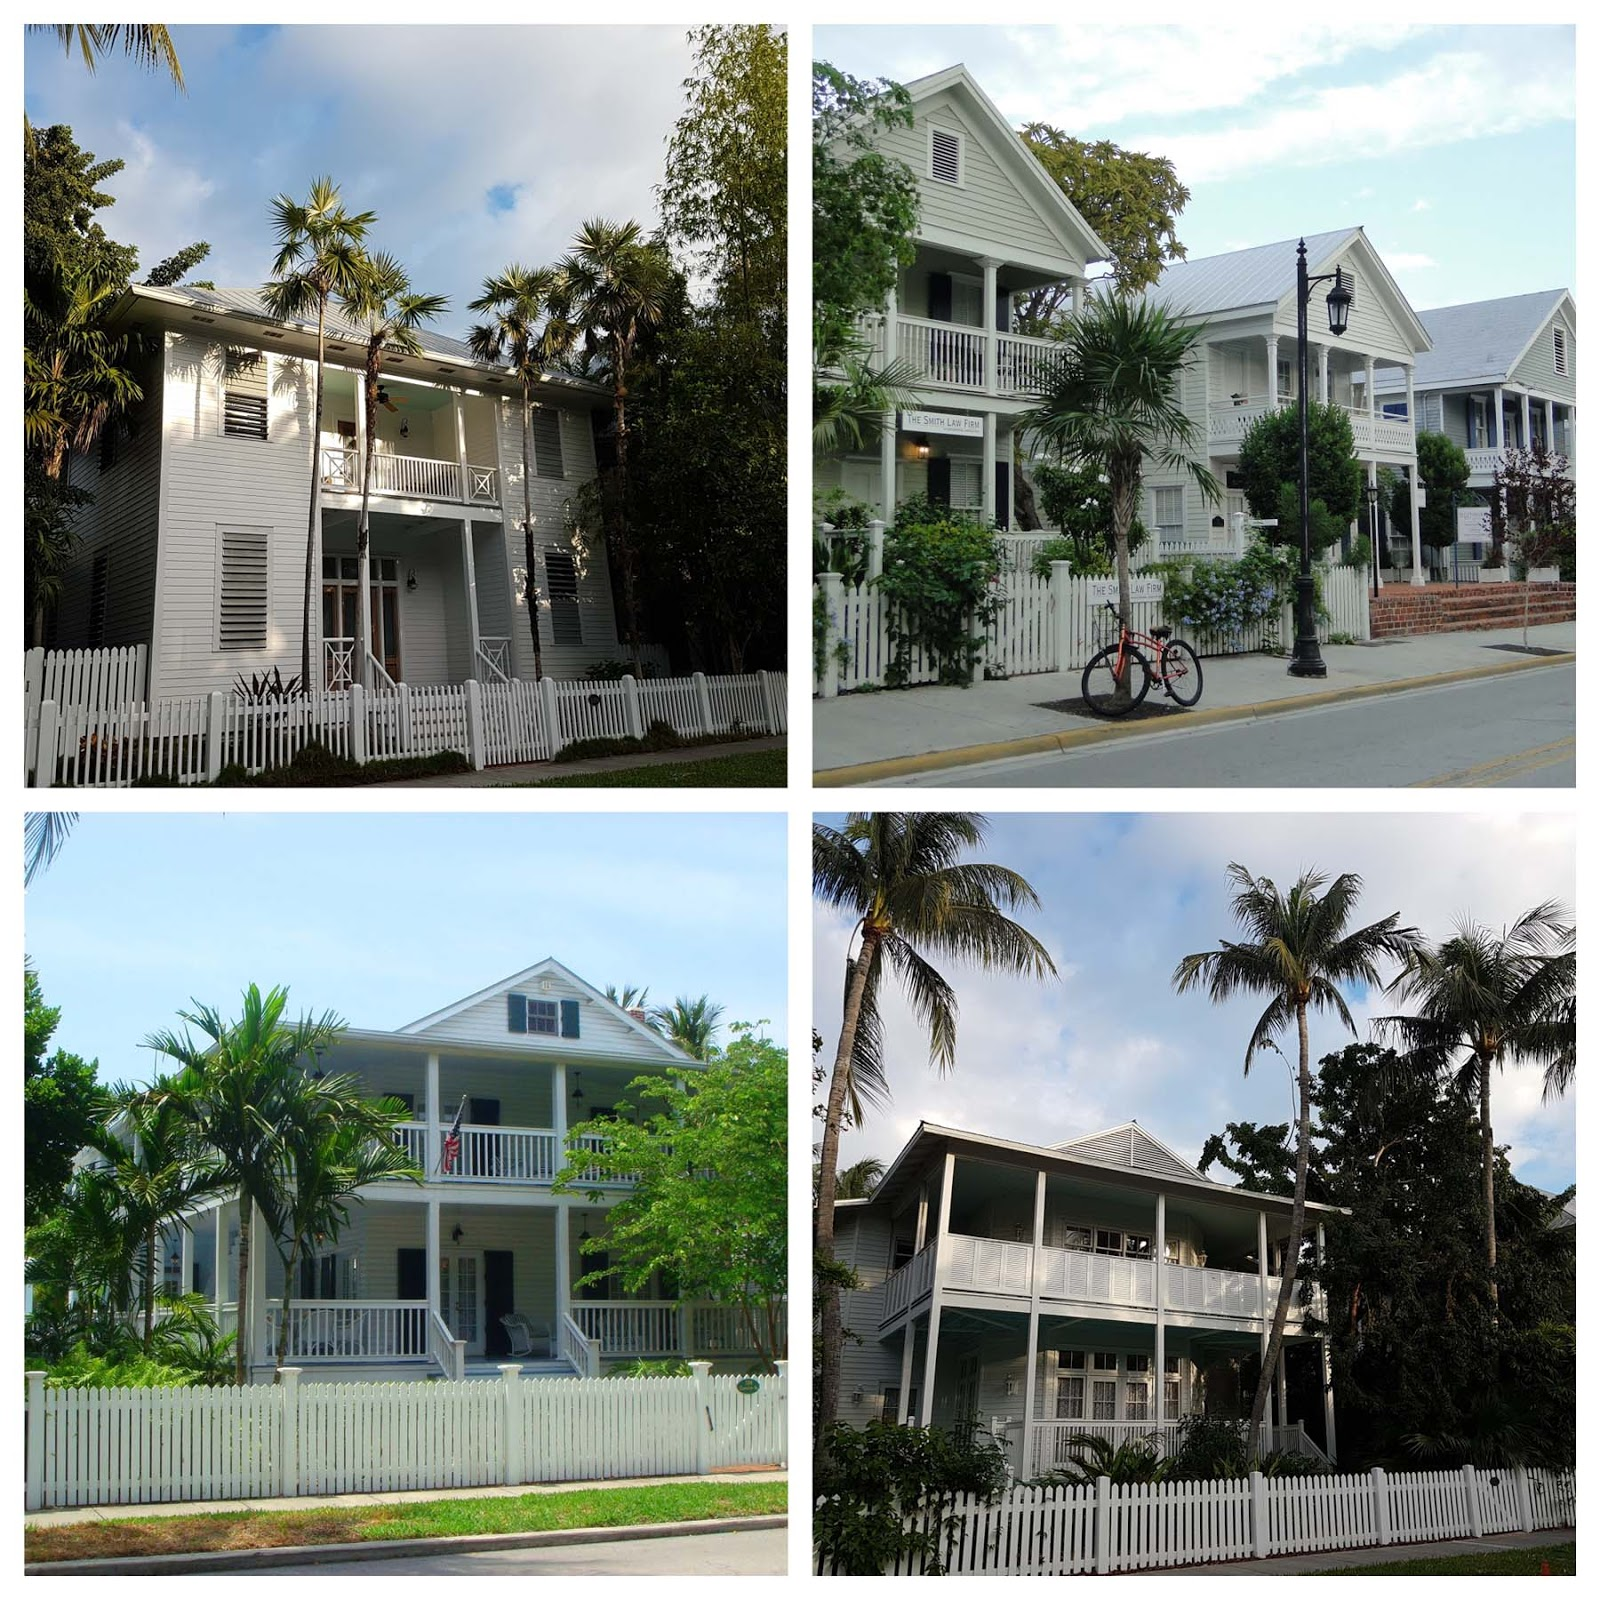 Casas do centro histórico de Key West